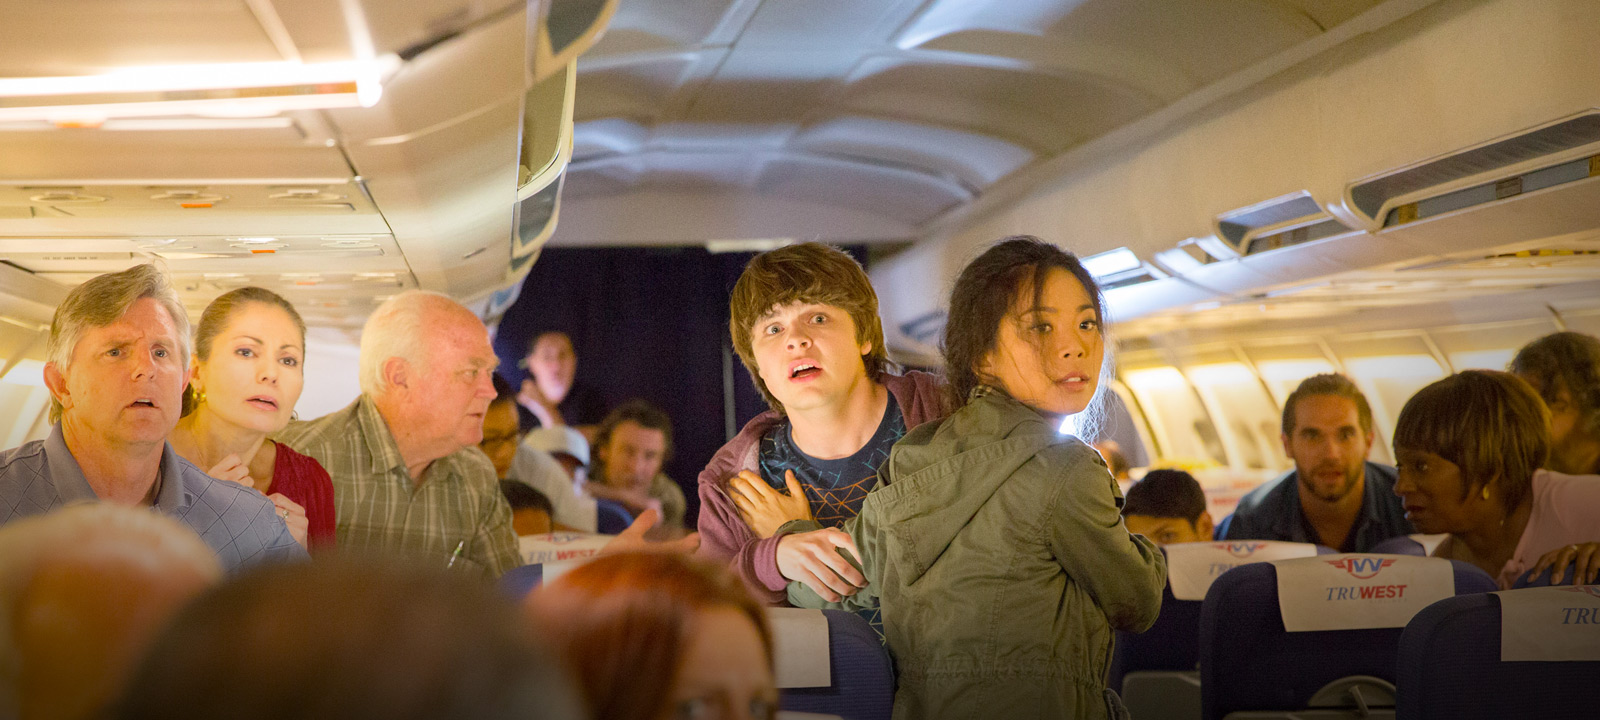 fear-the-walking-dead-flight-462-800×600